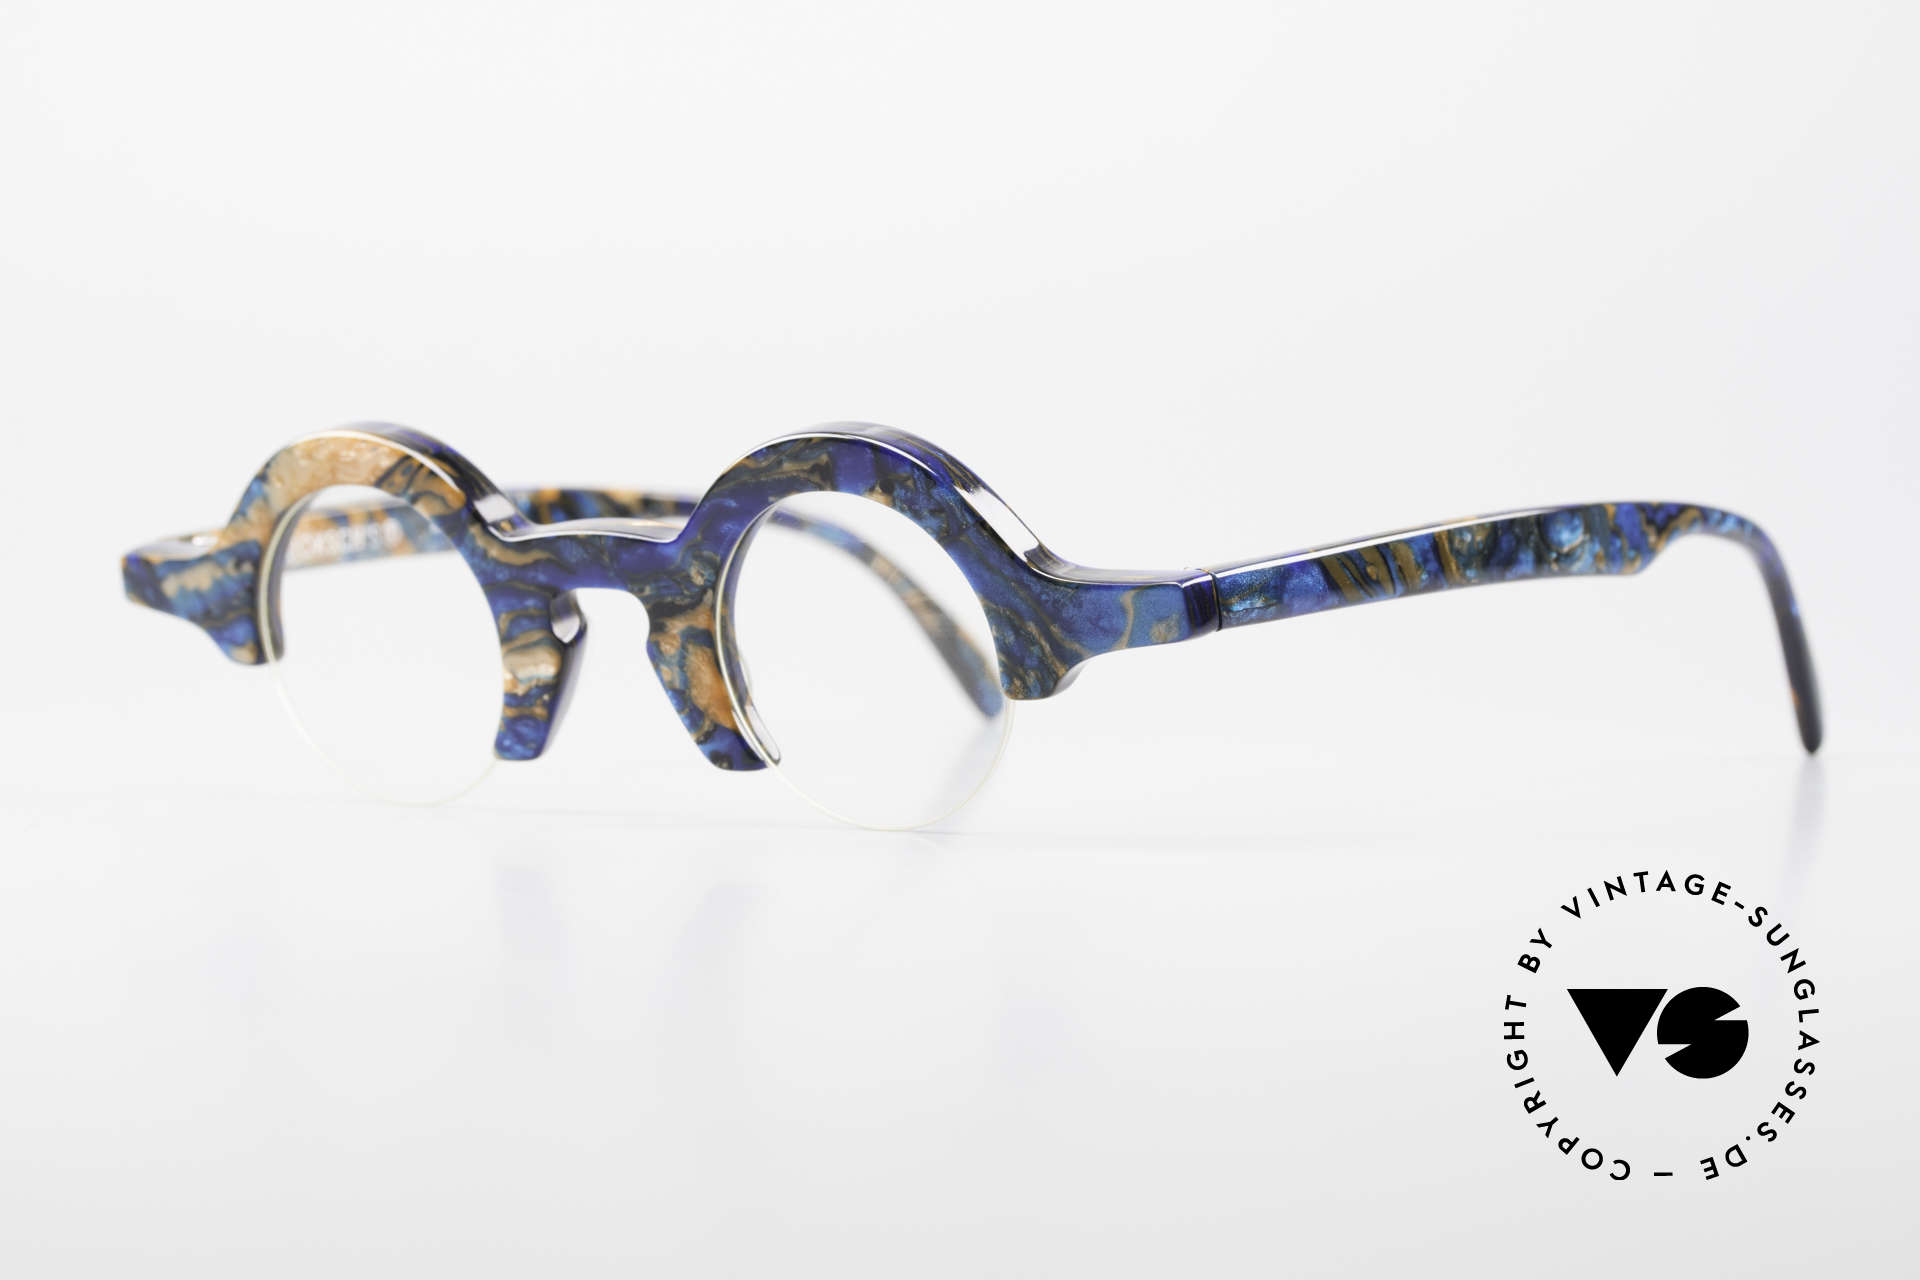 Proksch's A2 Futuristic Round 90's Eyeglasses, futuristic design from back in the days (mid 90's), Made for Men and Women